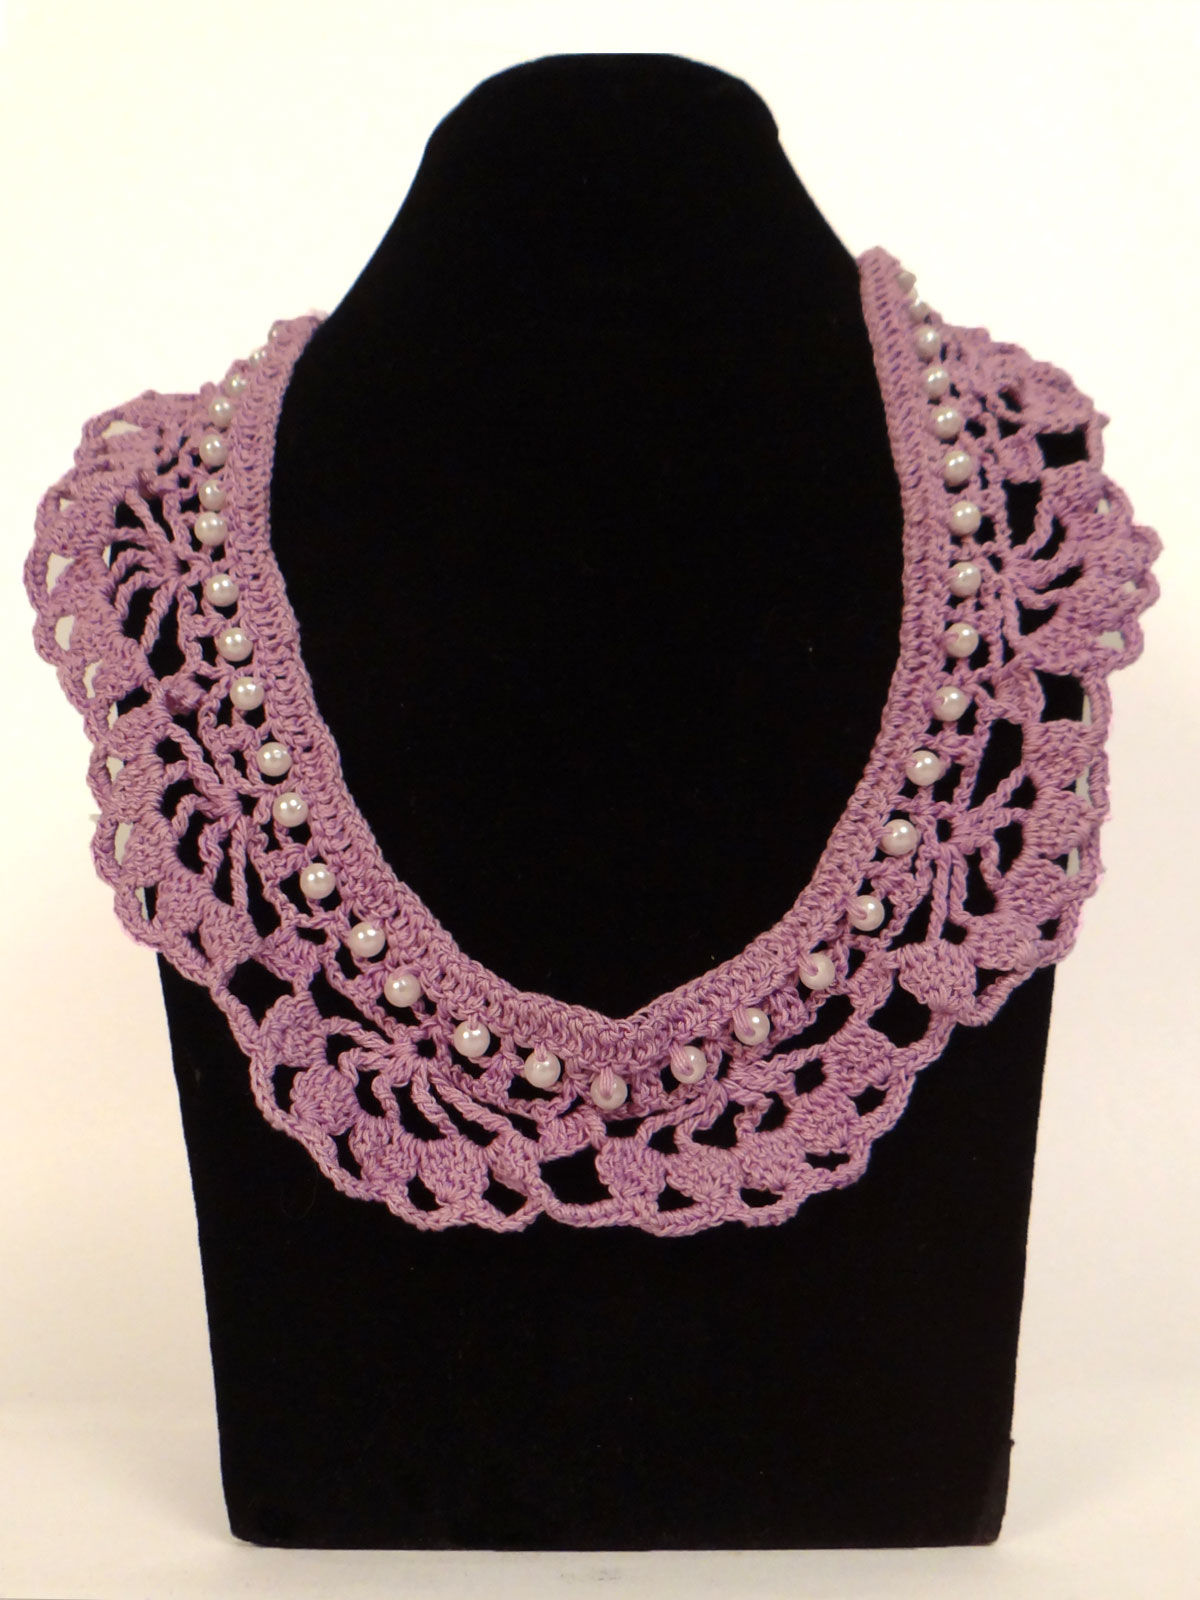 Pink crochet fabric necklace with white pearl beads